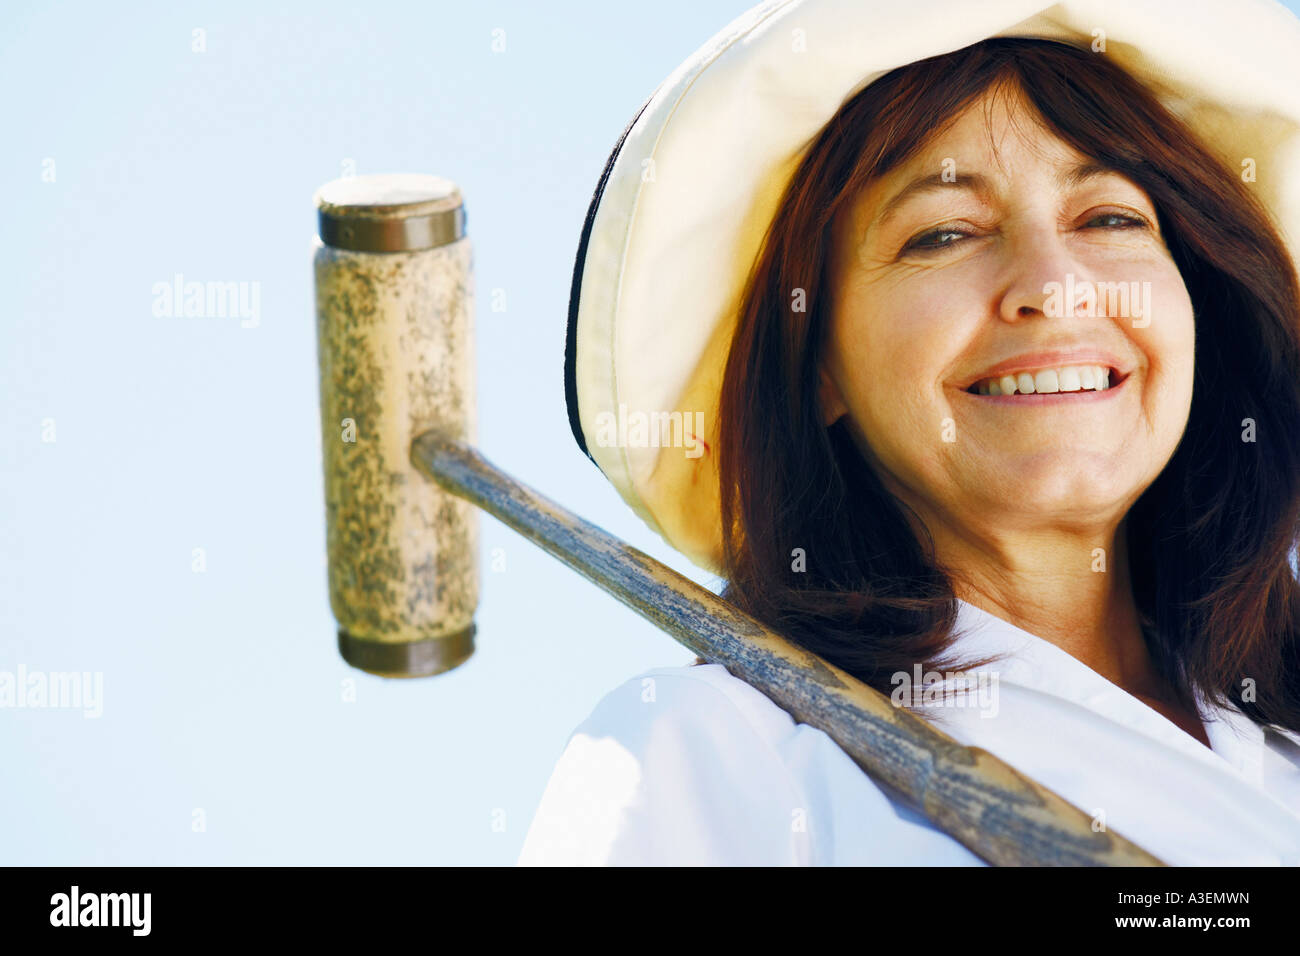 Low angle view of a mature woman holding a croquet mallet Stock Photo